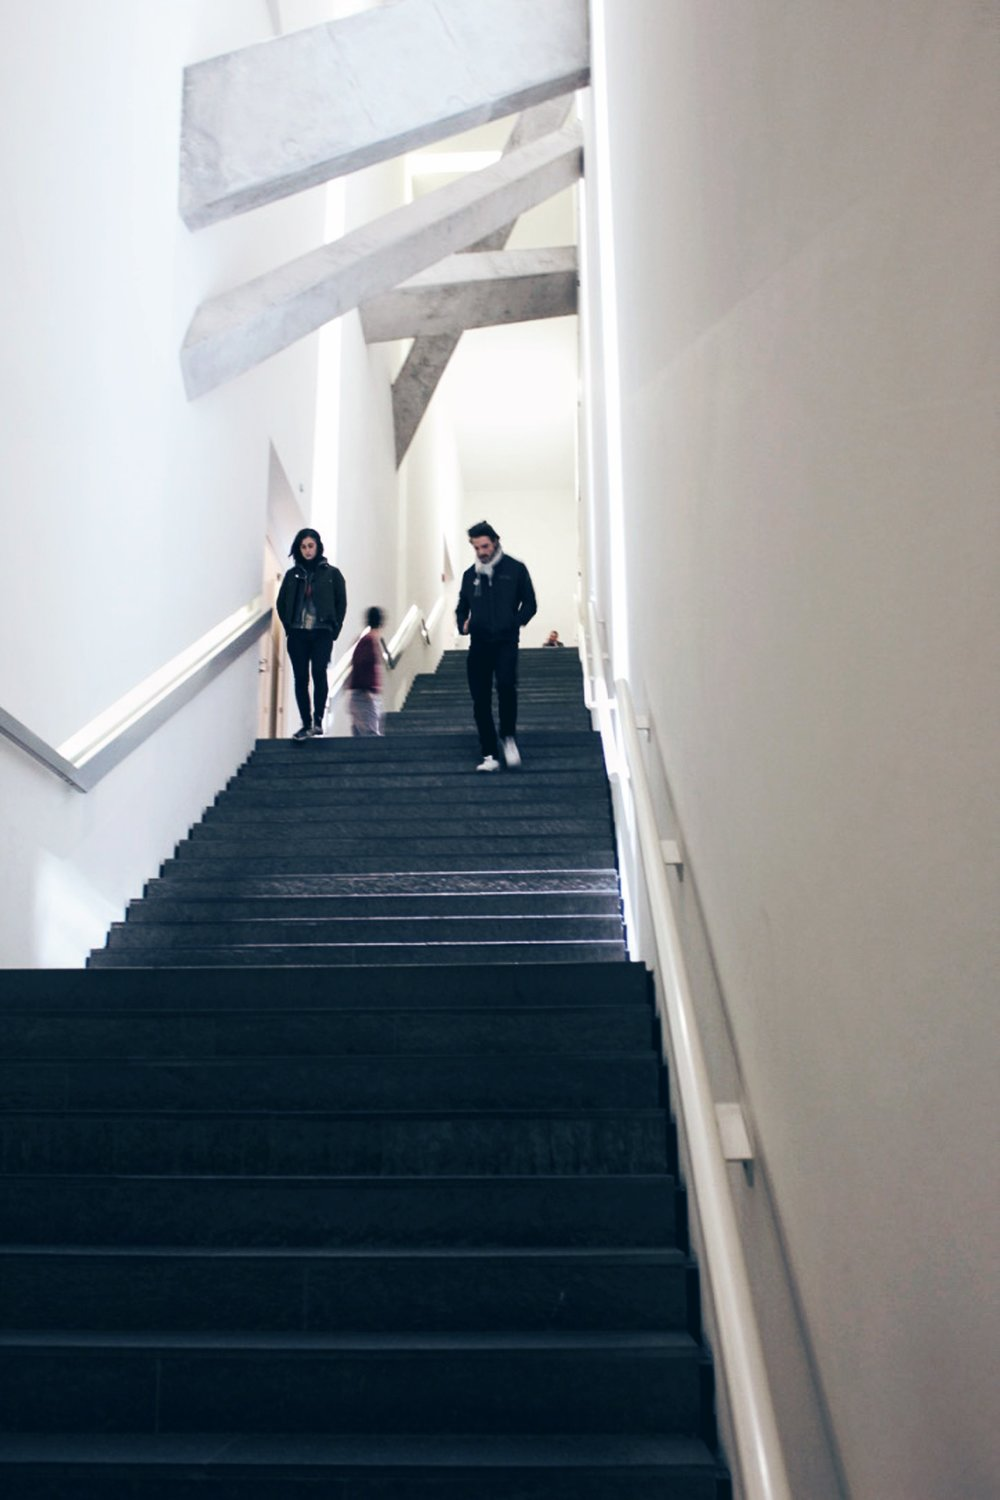 The Stair of Continuity emphasizing the continuum of history. Climbing eighty-two steps, visitors reach the entrance to the permanent exhibition two stories up.